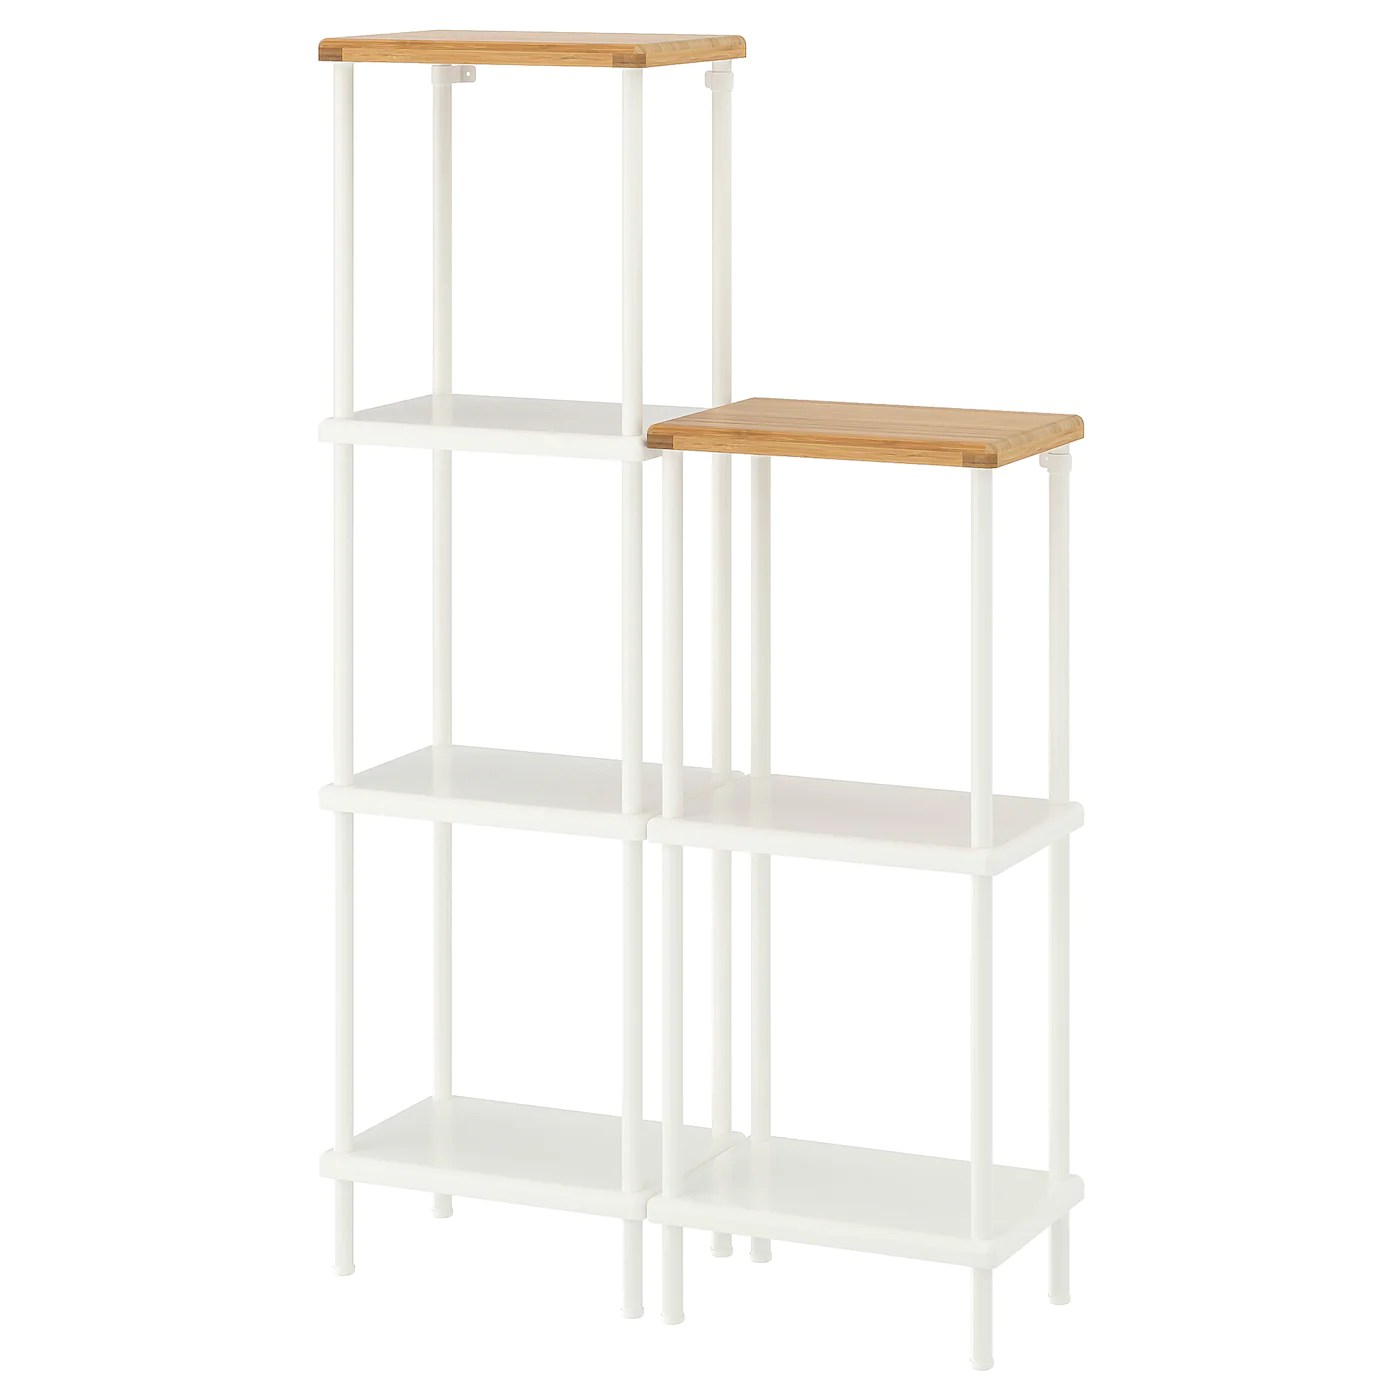 Ikea Vesken Shelf Units Ikea Ireland Dublin